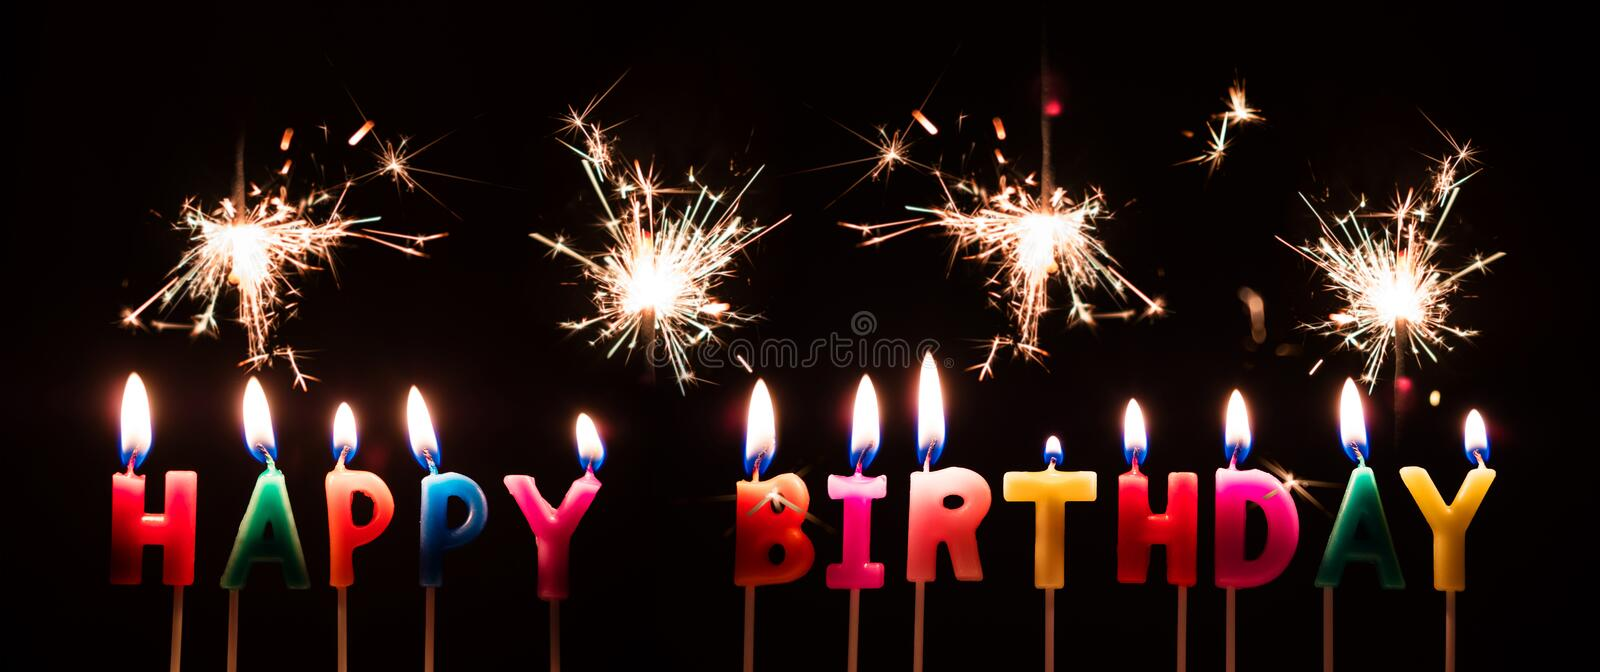 Colorful Happy Birthday Candles with Sparkler Fireworks, on black background royalty free stock photography